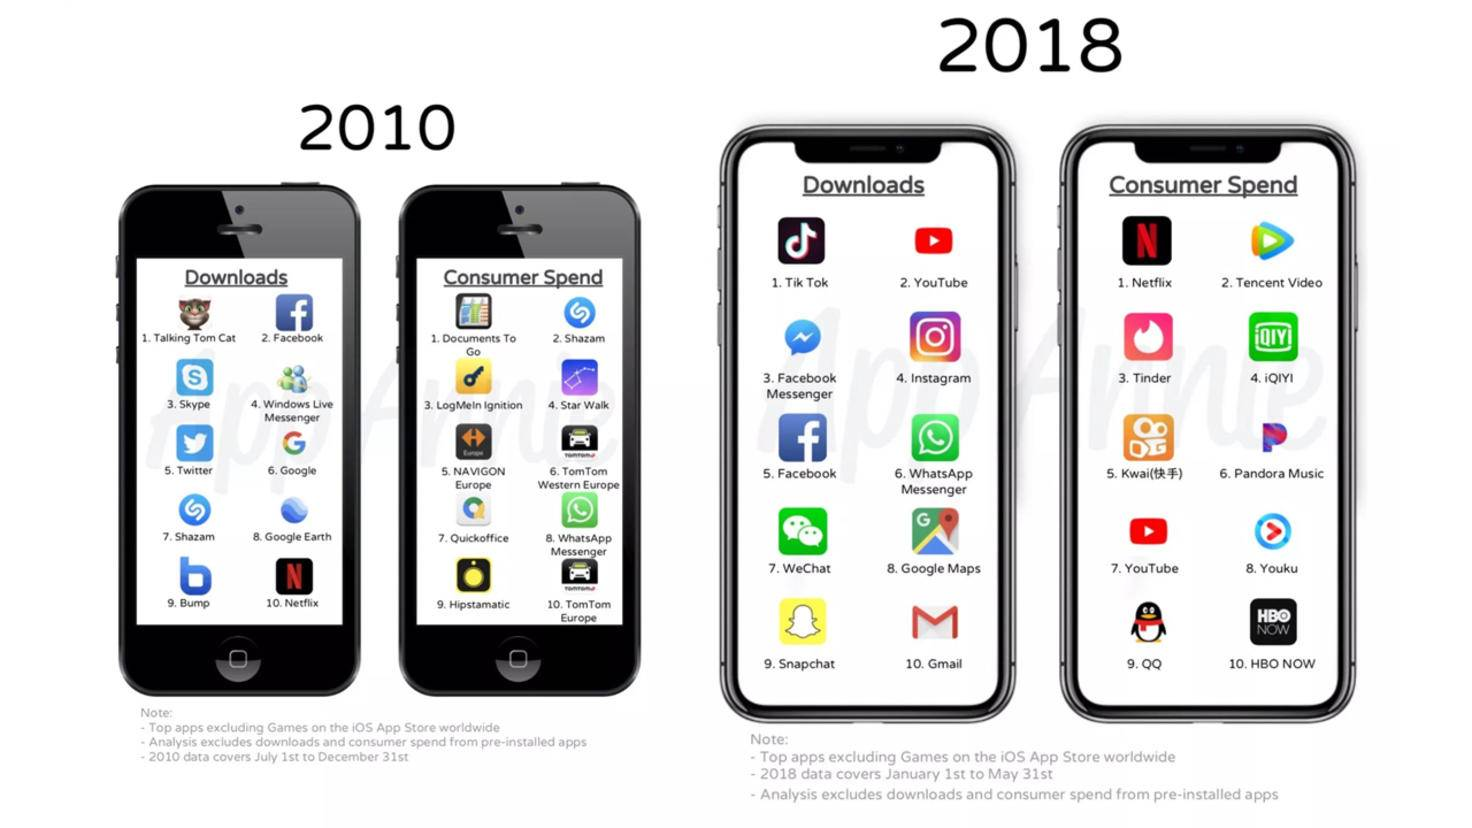 iPhone Apps 2010 2018